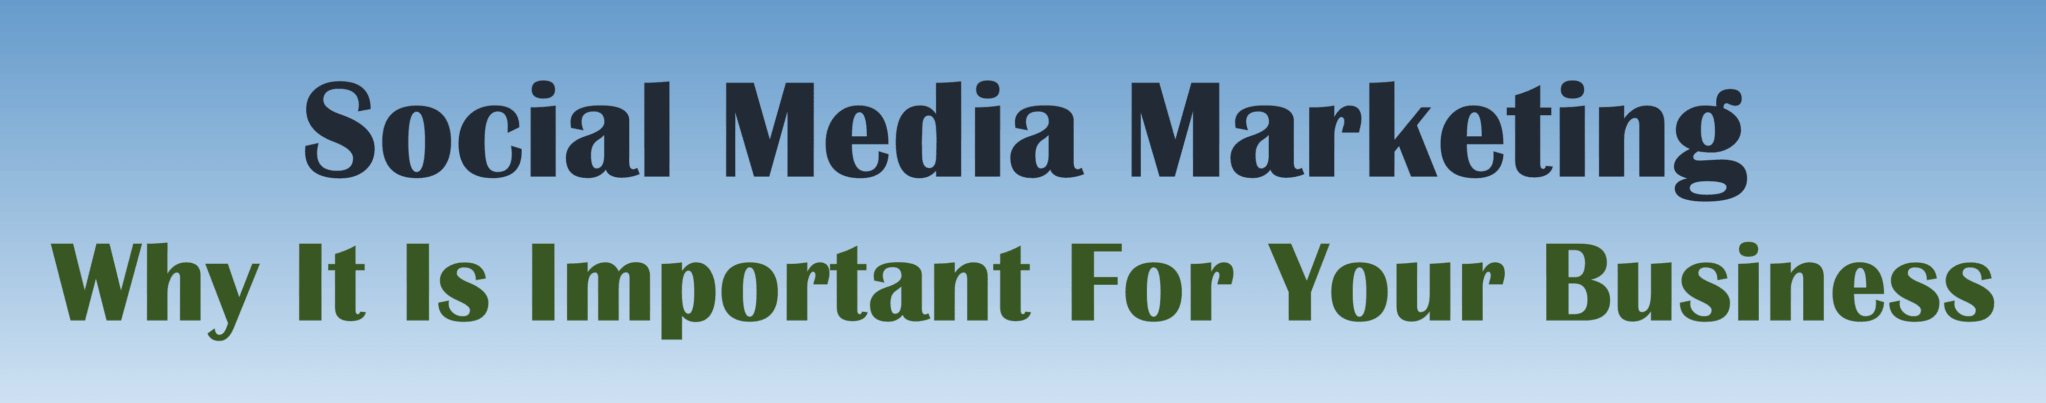 Social-Media-Marketing-Importance-For-Your-Business